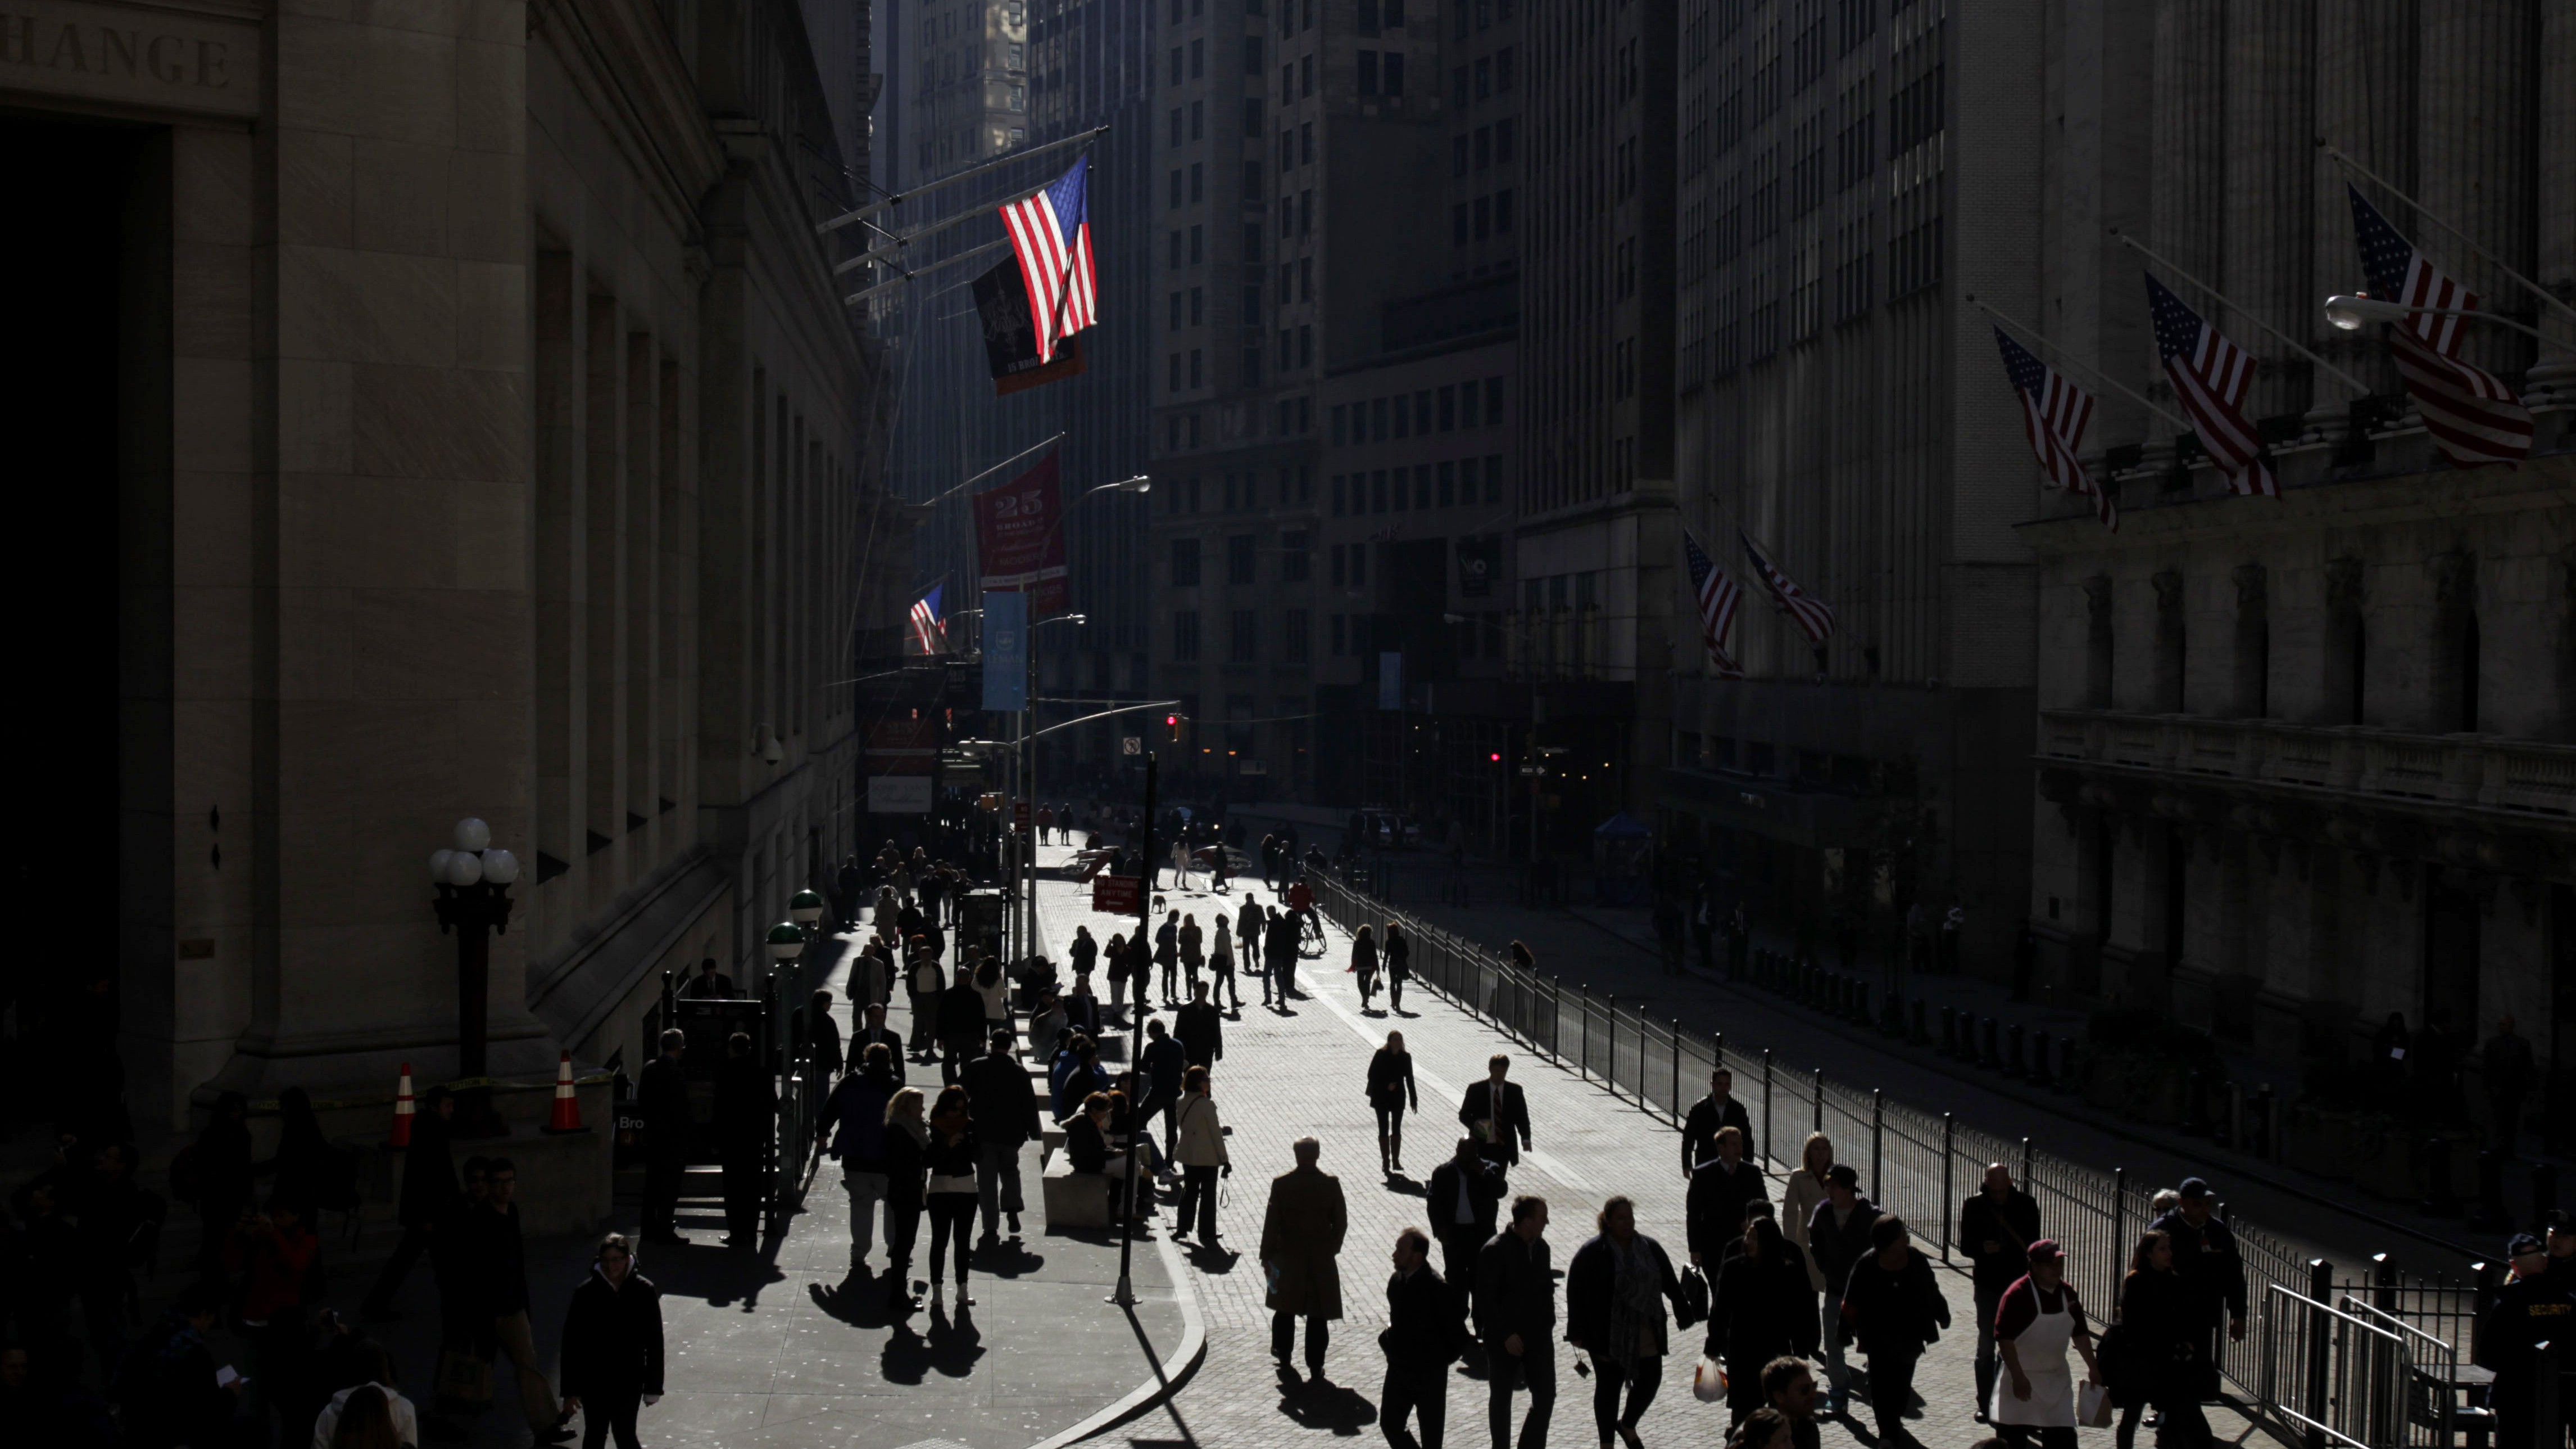 People walk freely in front of the New York Stock Exchange, which had been blocked by barricades since the start of the Occupy Wall Street protests in New York, Wednesday, Nov. 2, 2011. ()